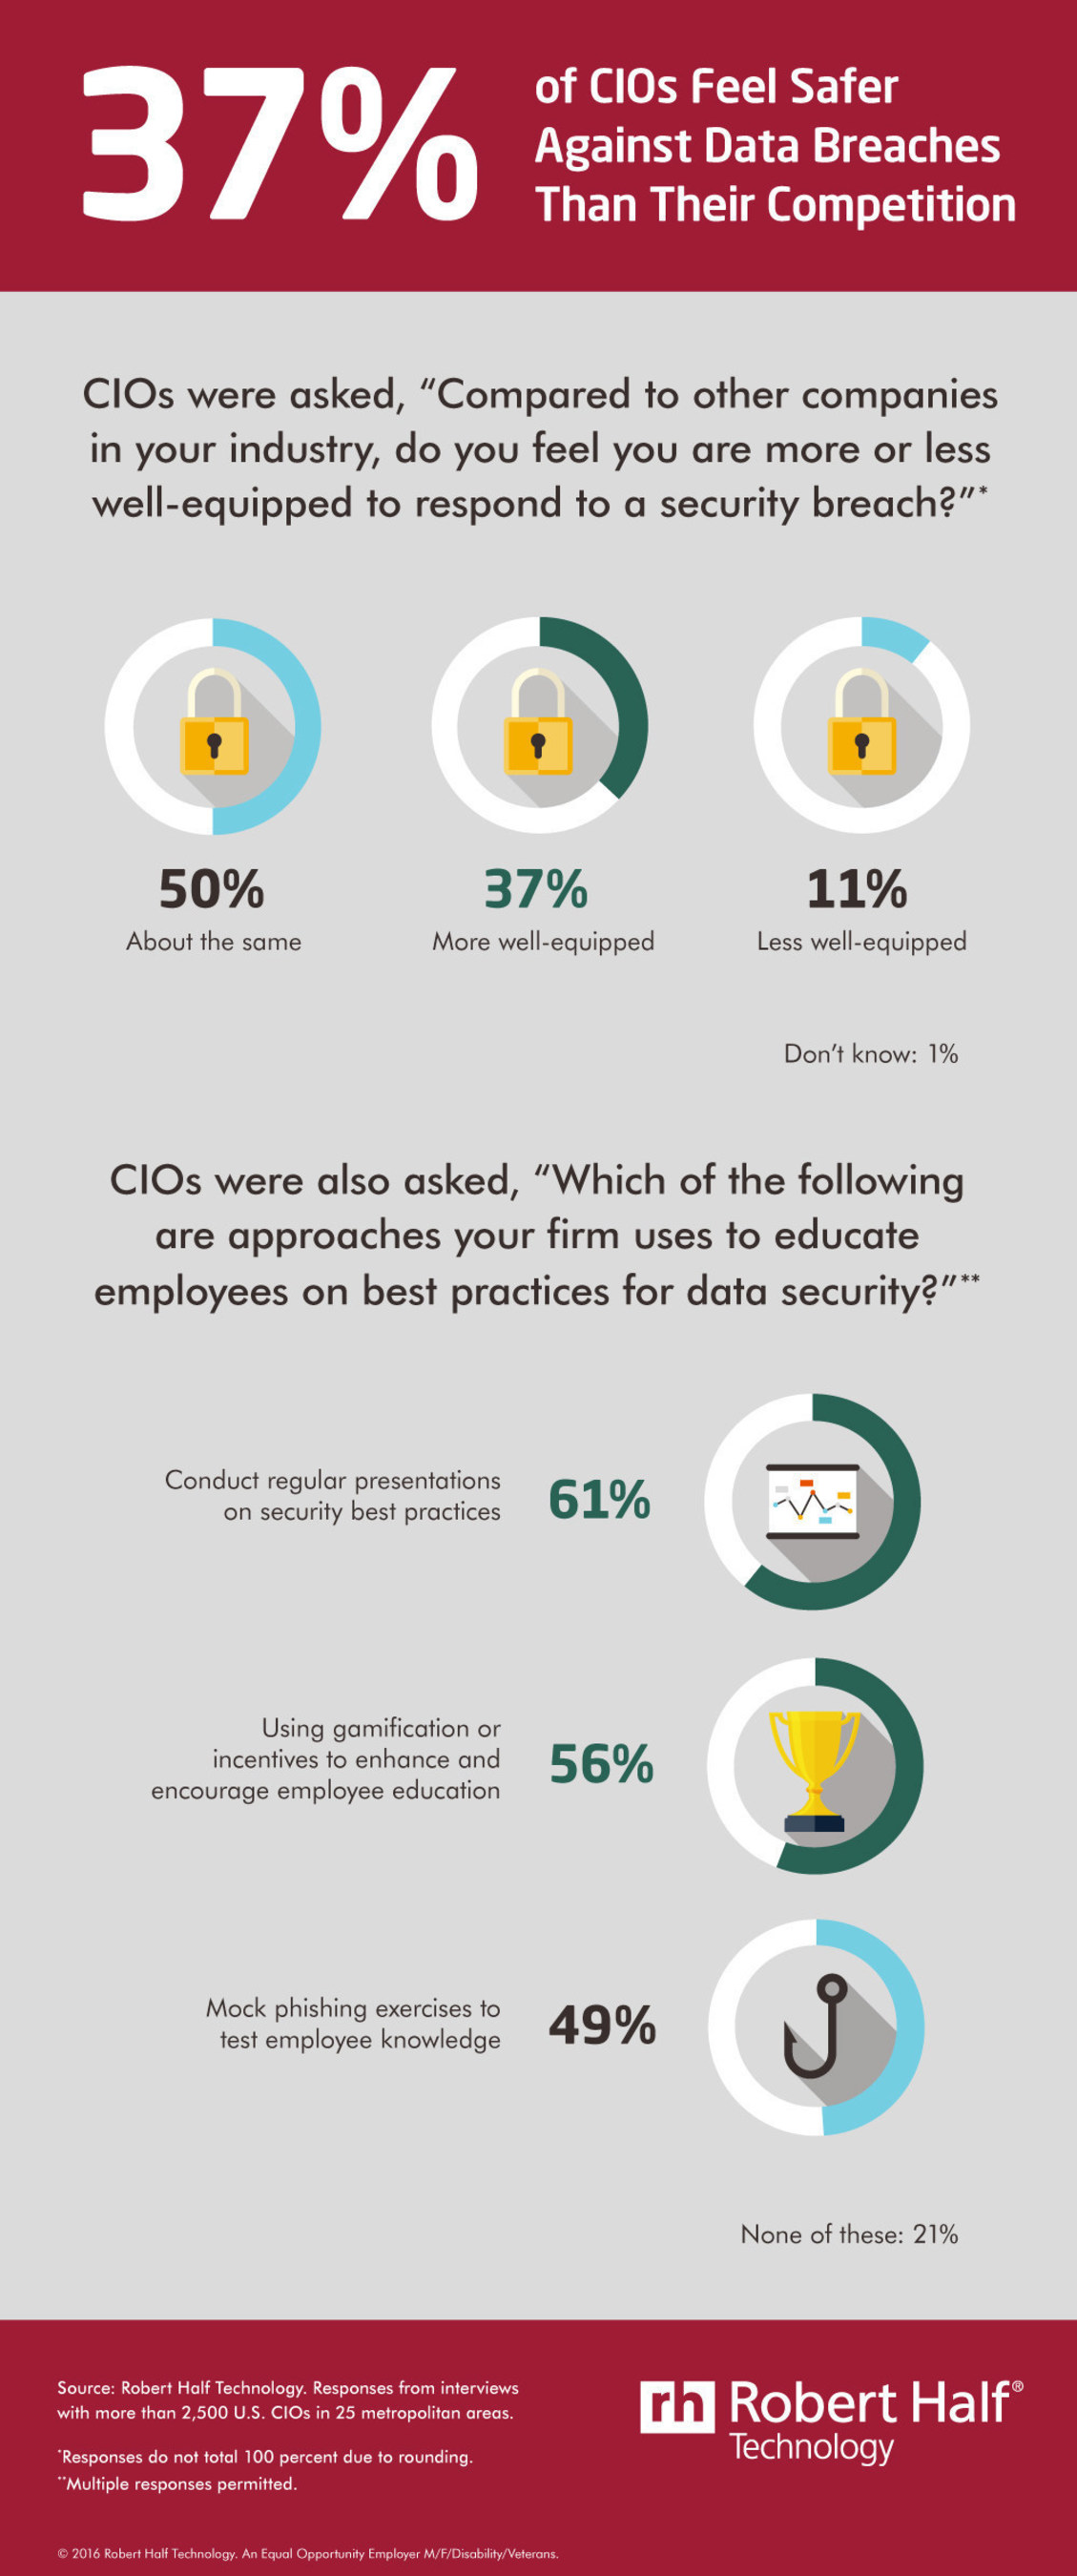 CIOs Confident in Ability to Respond to Breaches, Less so on Budgets